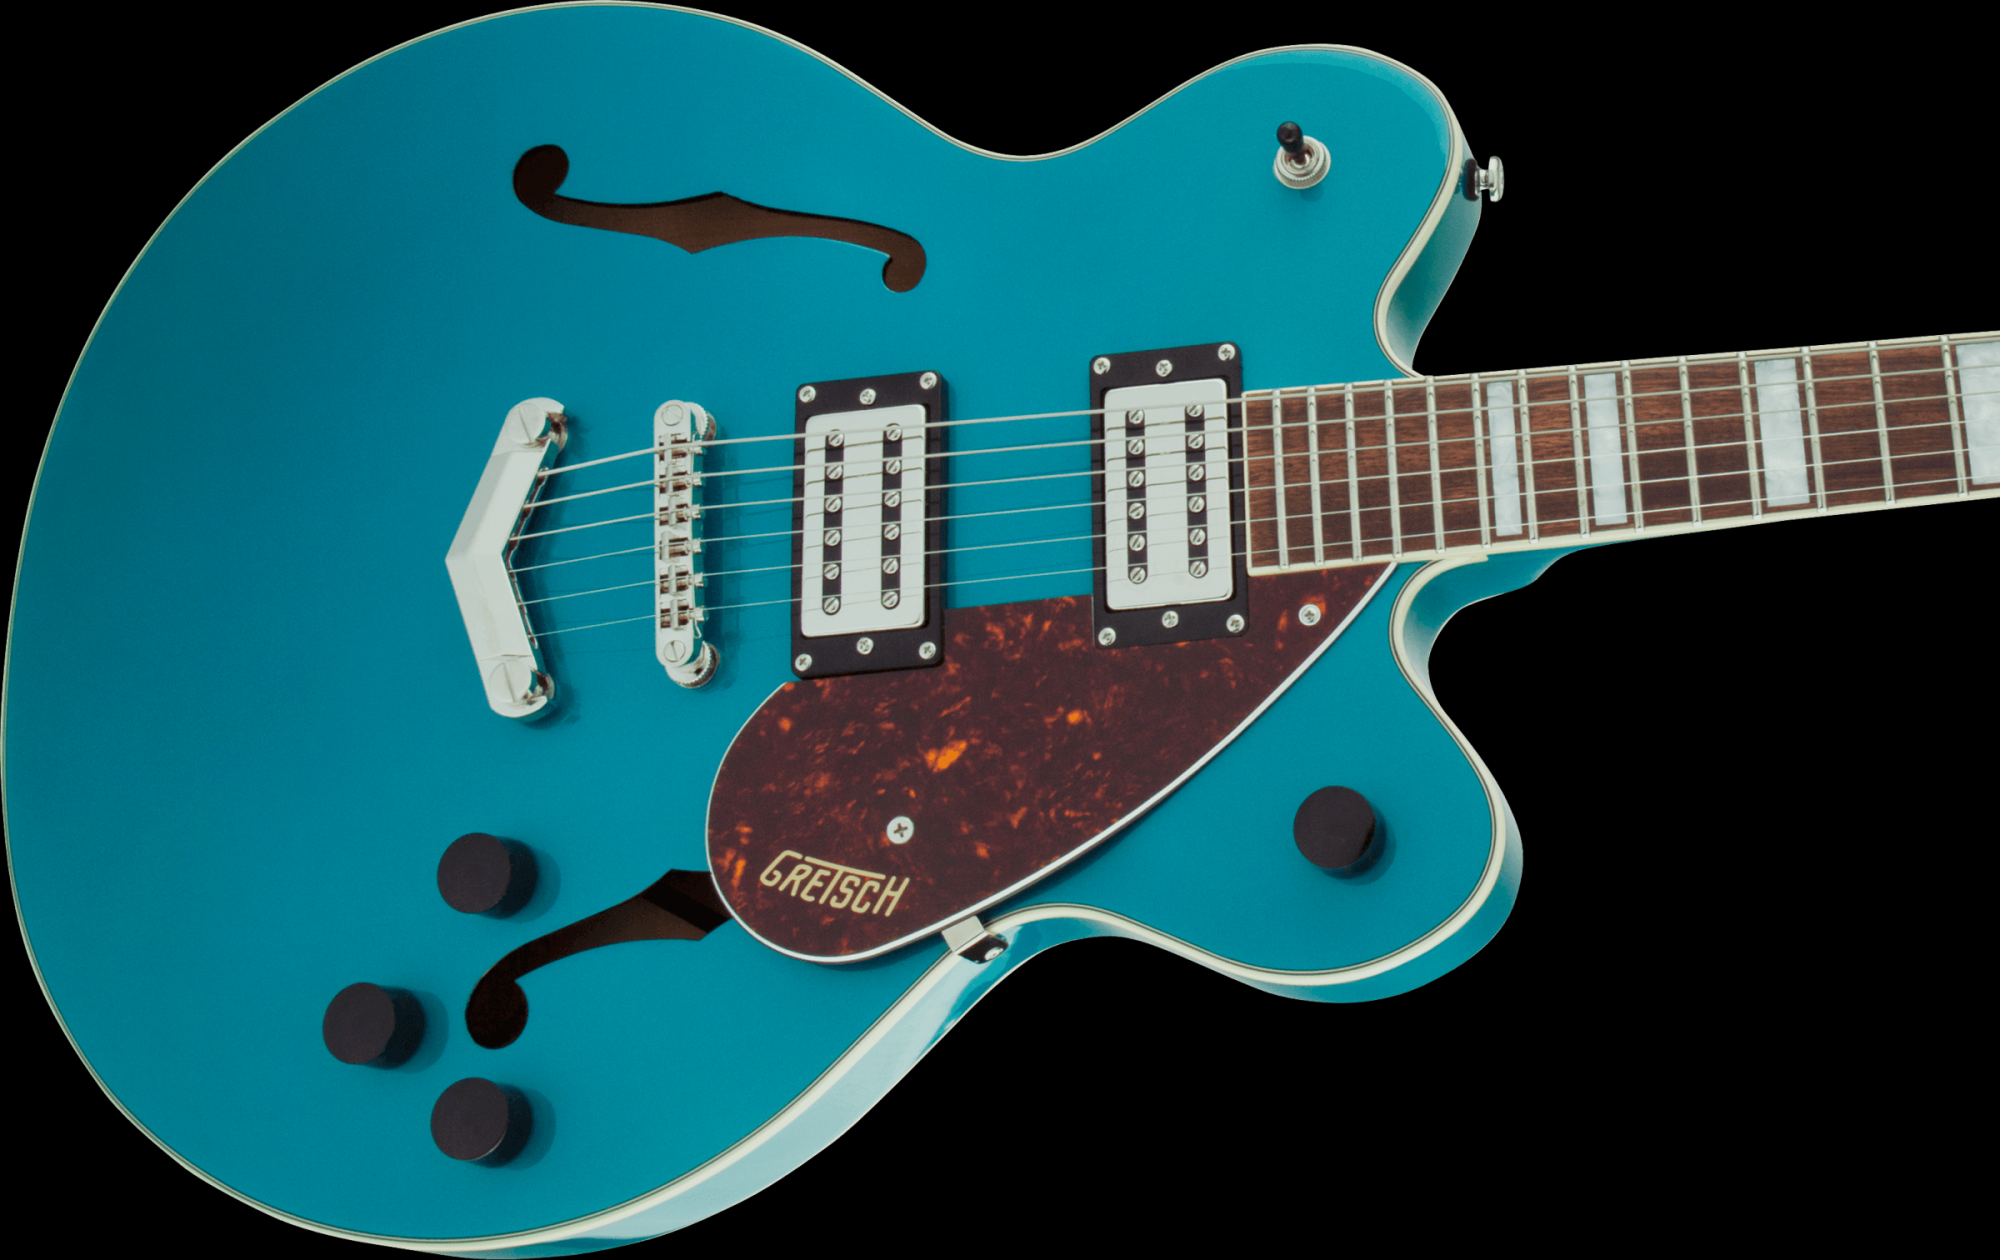 Gretsch G2622 Streamliner Center Block Double-Cut with V-Stoptail, Broad'Tron BT-2S Pickups Ocean Turquoise